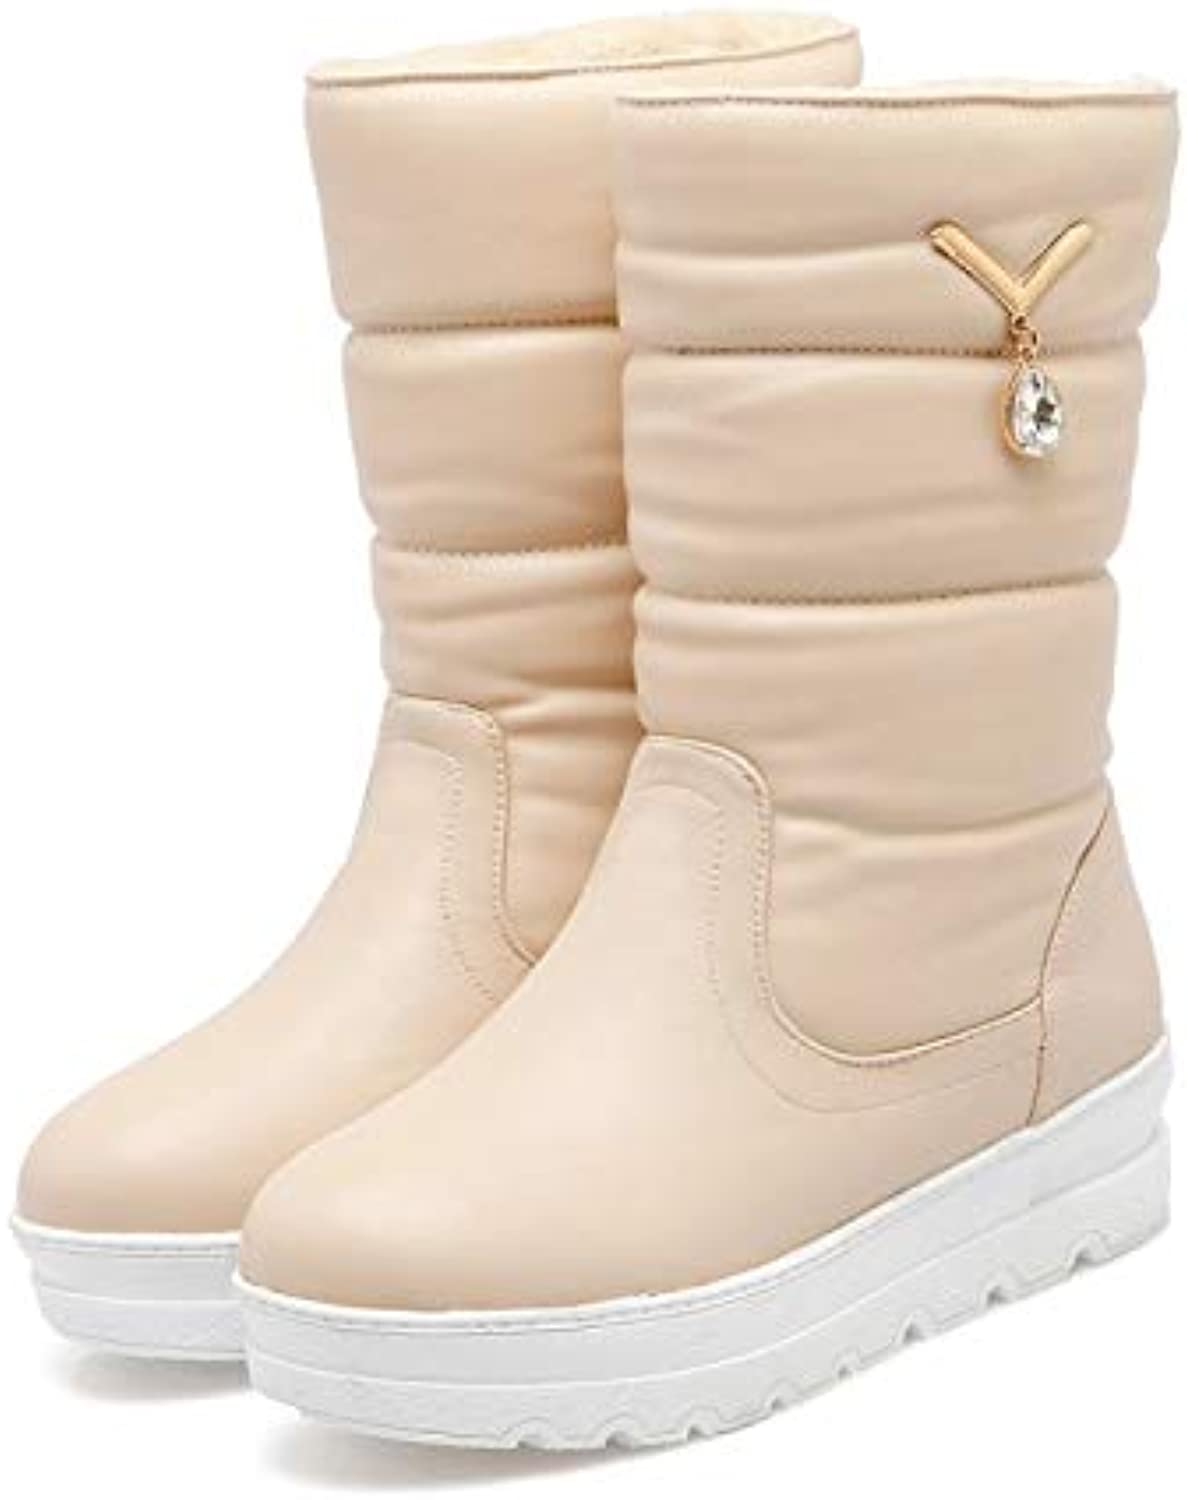 fbe47efe79a12 Women's Snow Boots Ladies Winter Plush Women's Boots Crystal ...